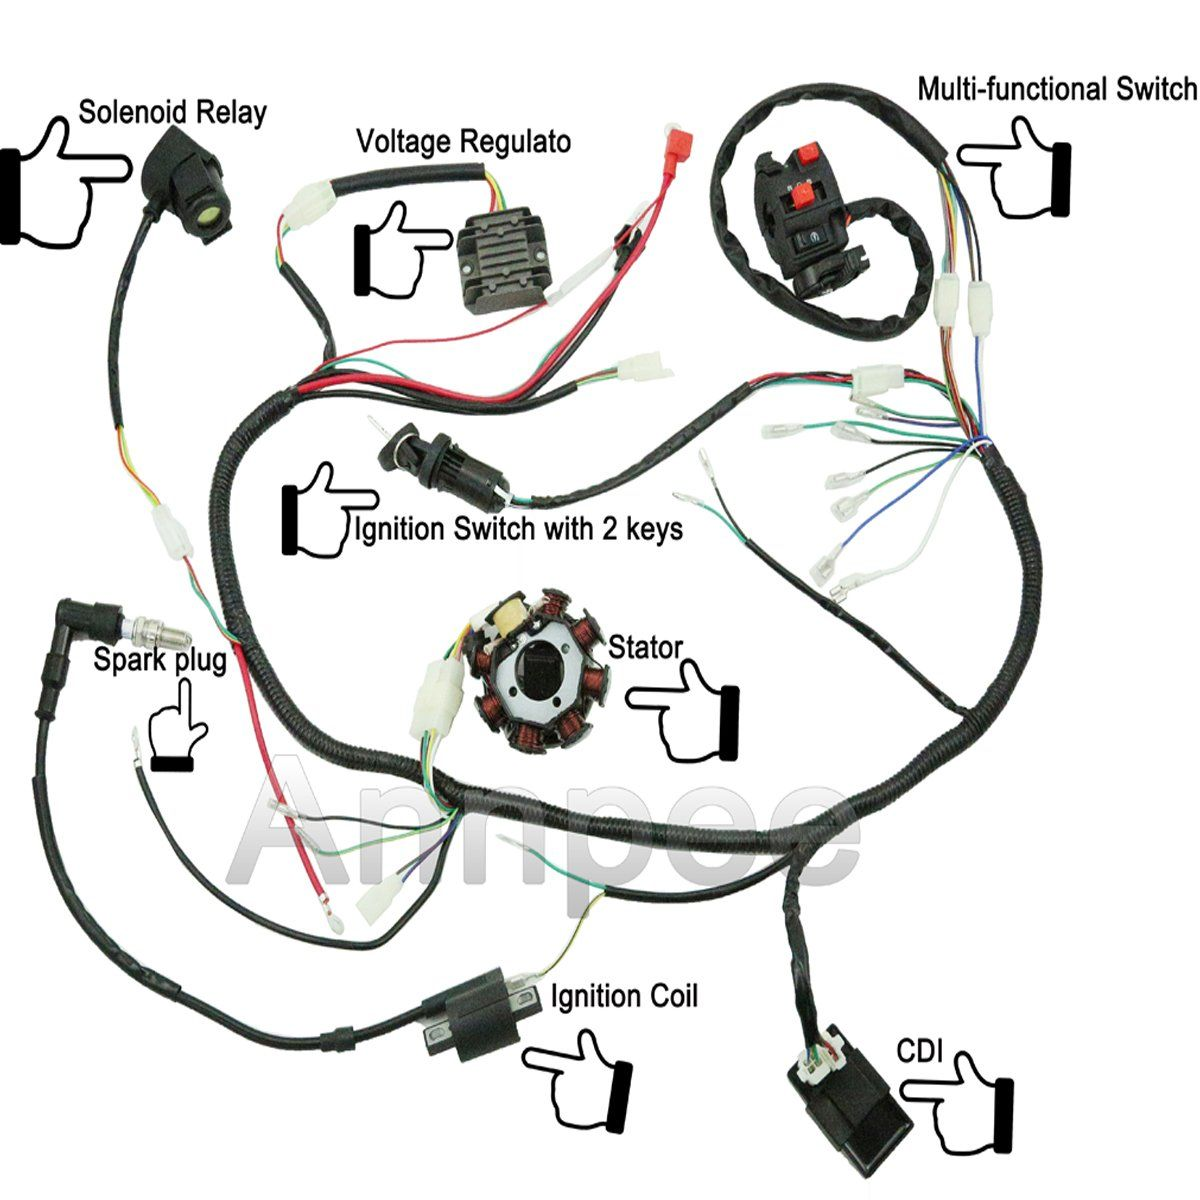 wiring harness kit for atv 50cc dirt bike wiring diagram wiring diagram in 2020  with  50cc dirt bike wiring diagram wiring